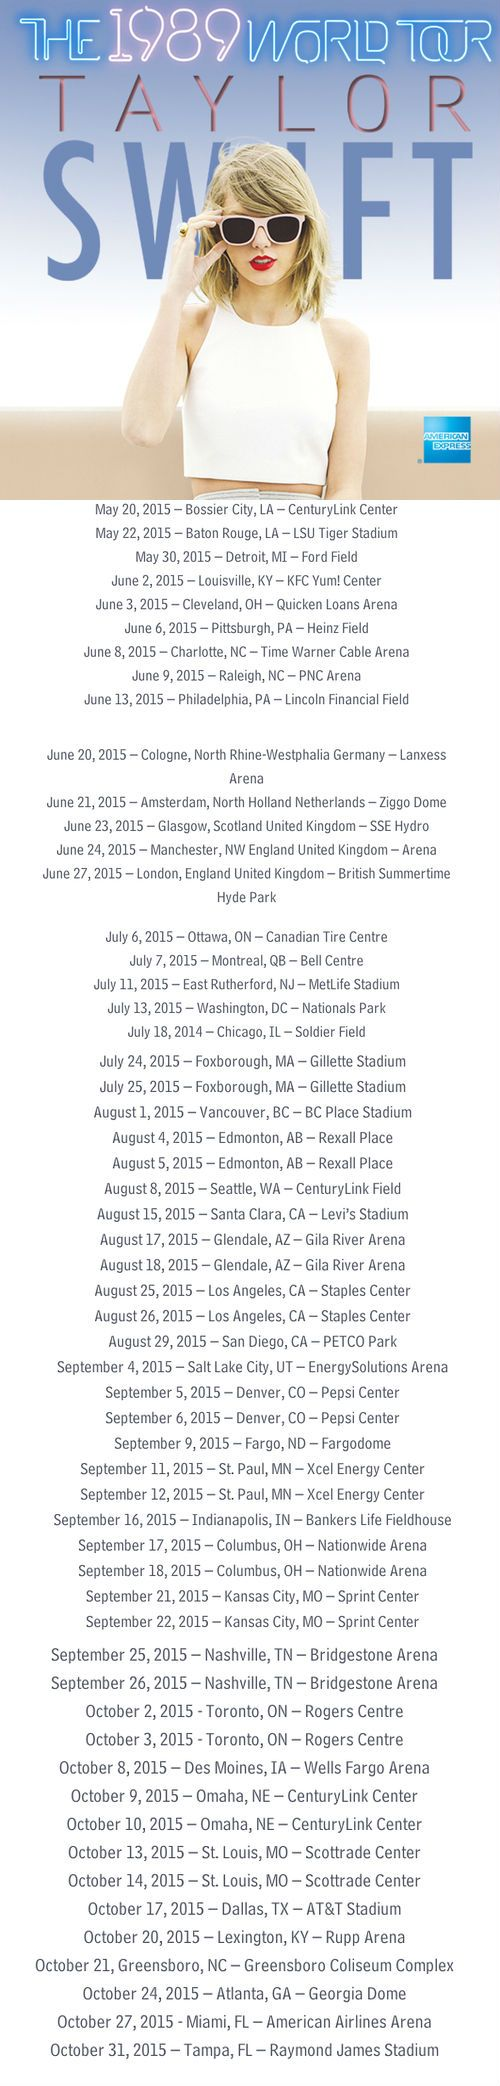 1989 TOUR DATES!!!!!!!!!!! I CAN'T BREATHE!!!!!! The closest she's getting to me is Dallas TX!